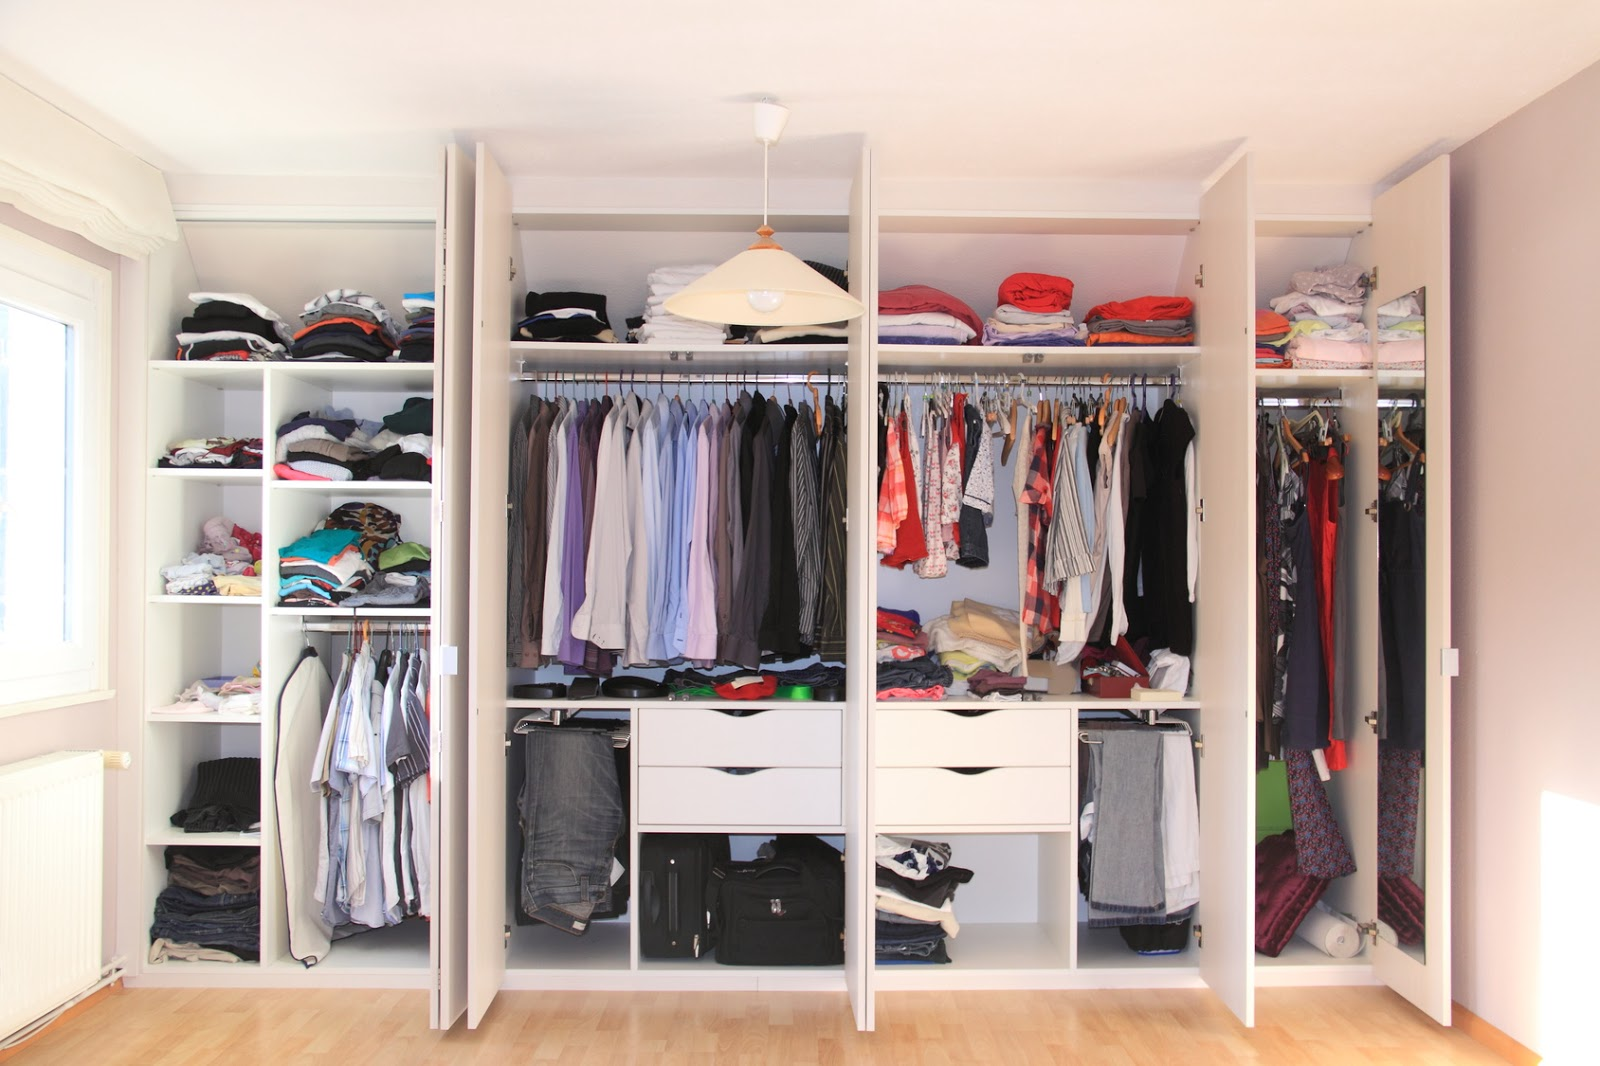 If You Use The Above Ten Suggestions Your Bedroom Closet Will Have A Basis  To Start Fresh And Organized. This Will Keep The Space Uncluttered And Easy  To ...